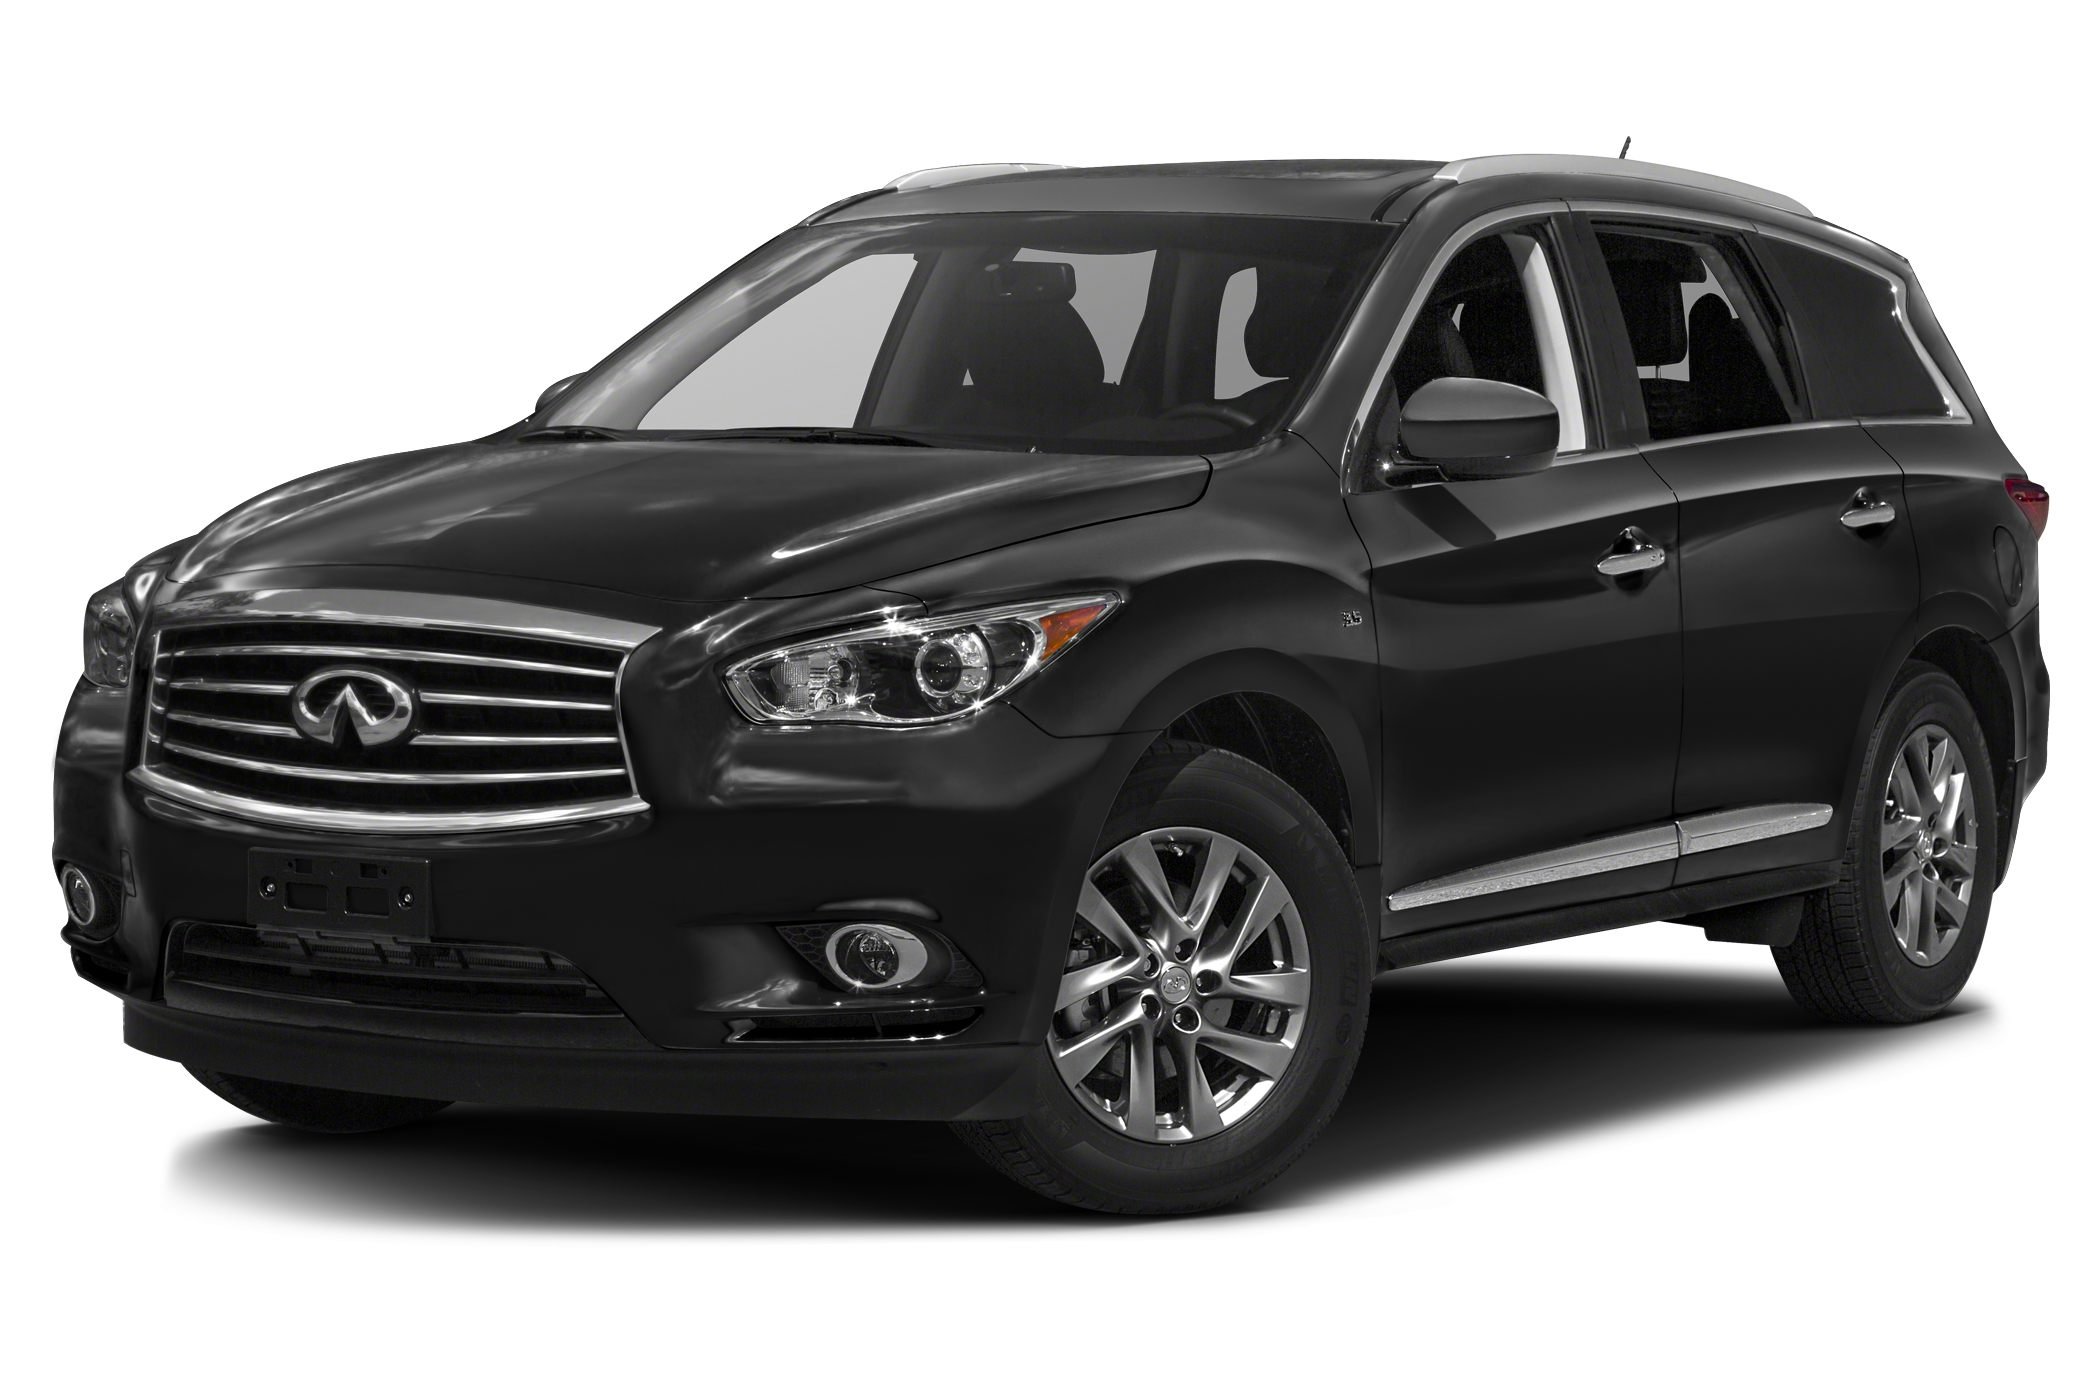 2014 infiniti qx60 hybrid. Black Bedroom Furniture Sets. Home Design Ideas